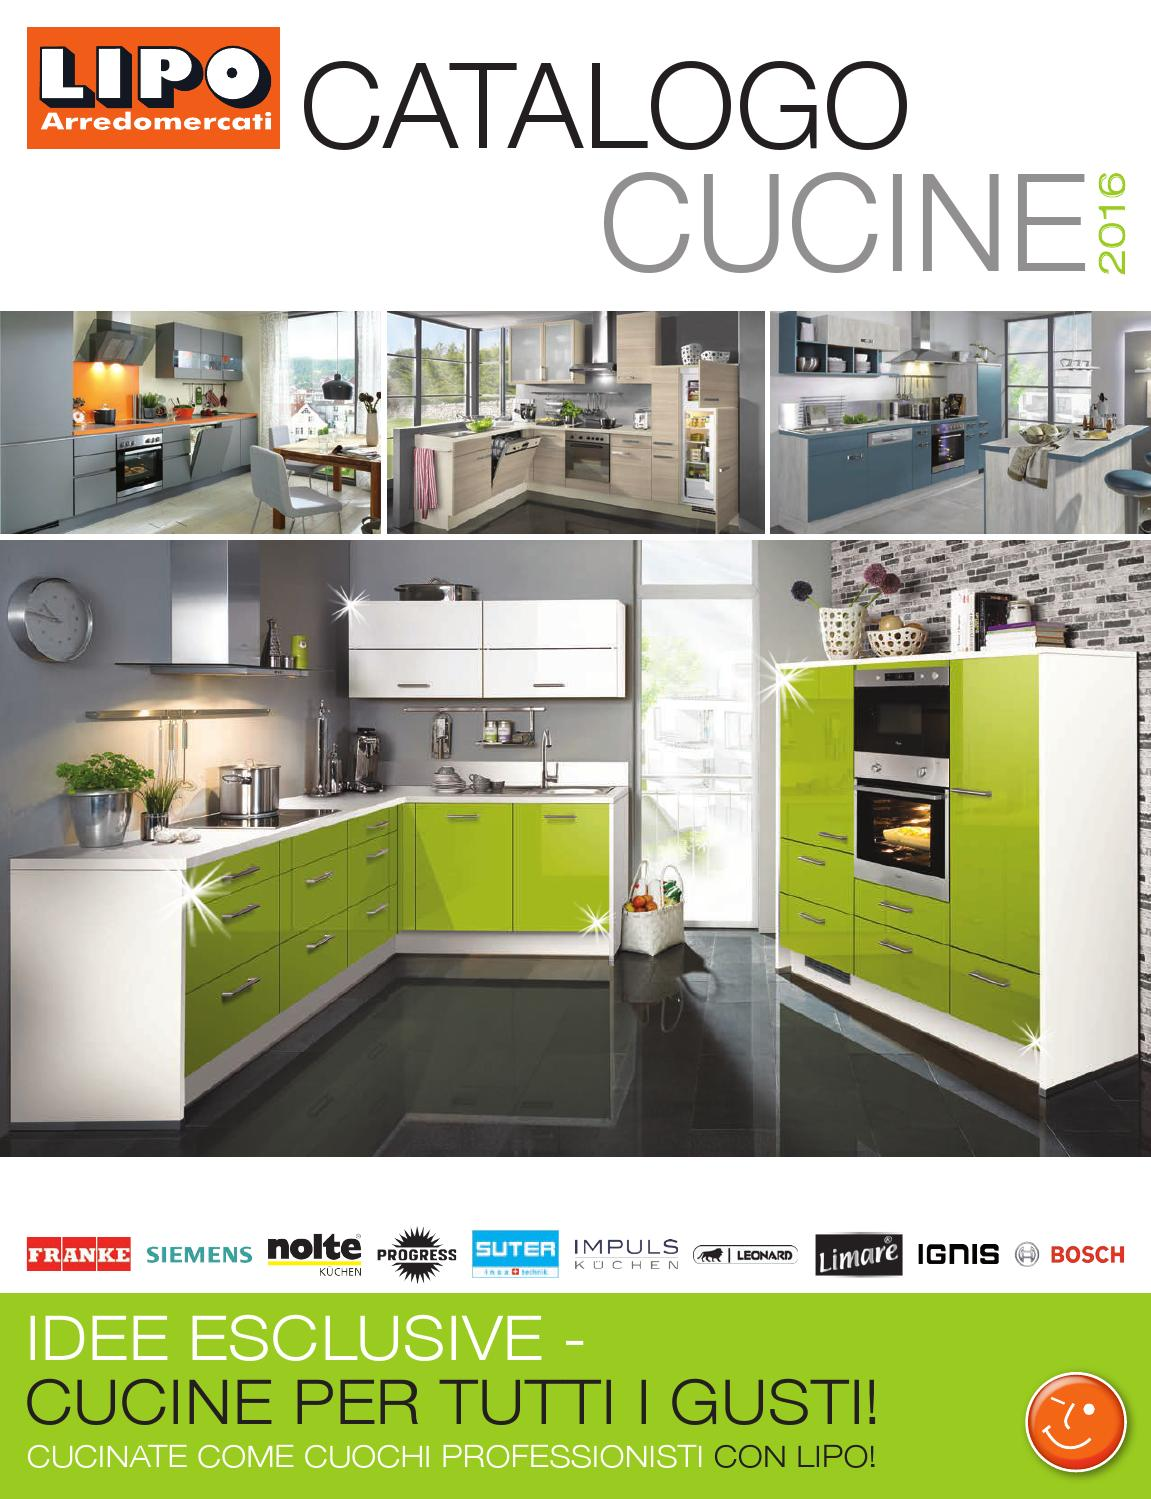 Catalogo cucine 2016 by sitesmedia - issuu